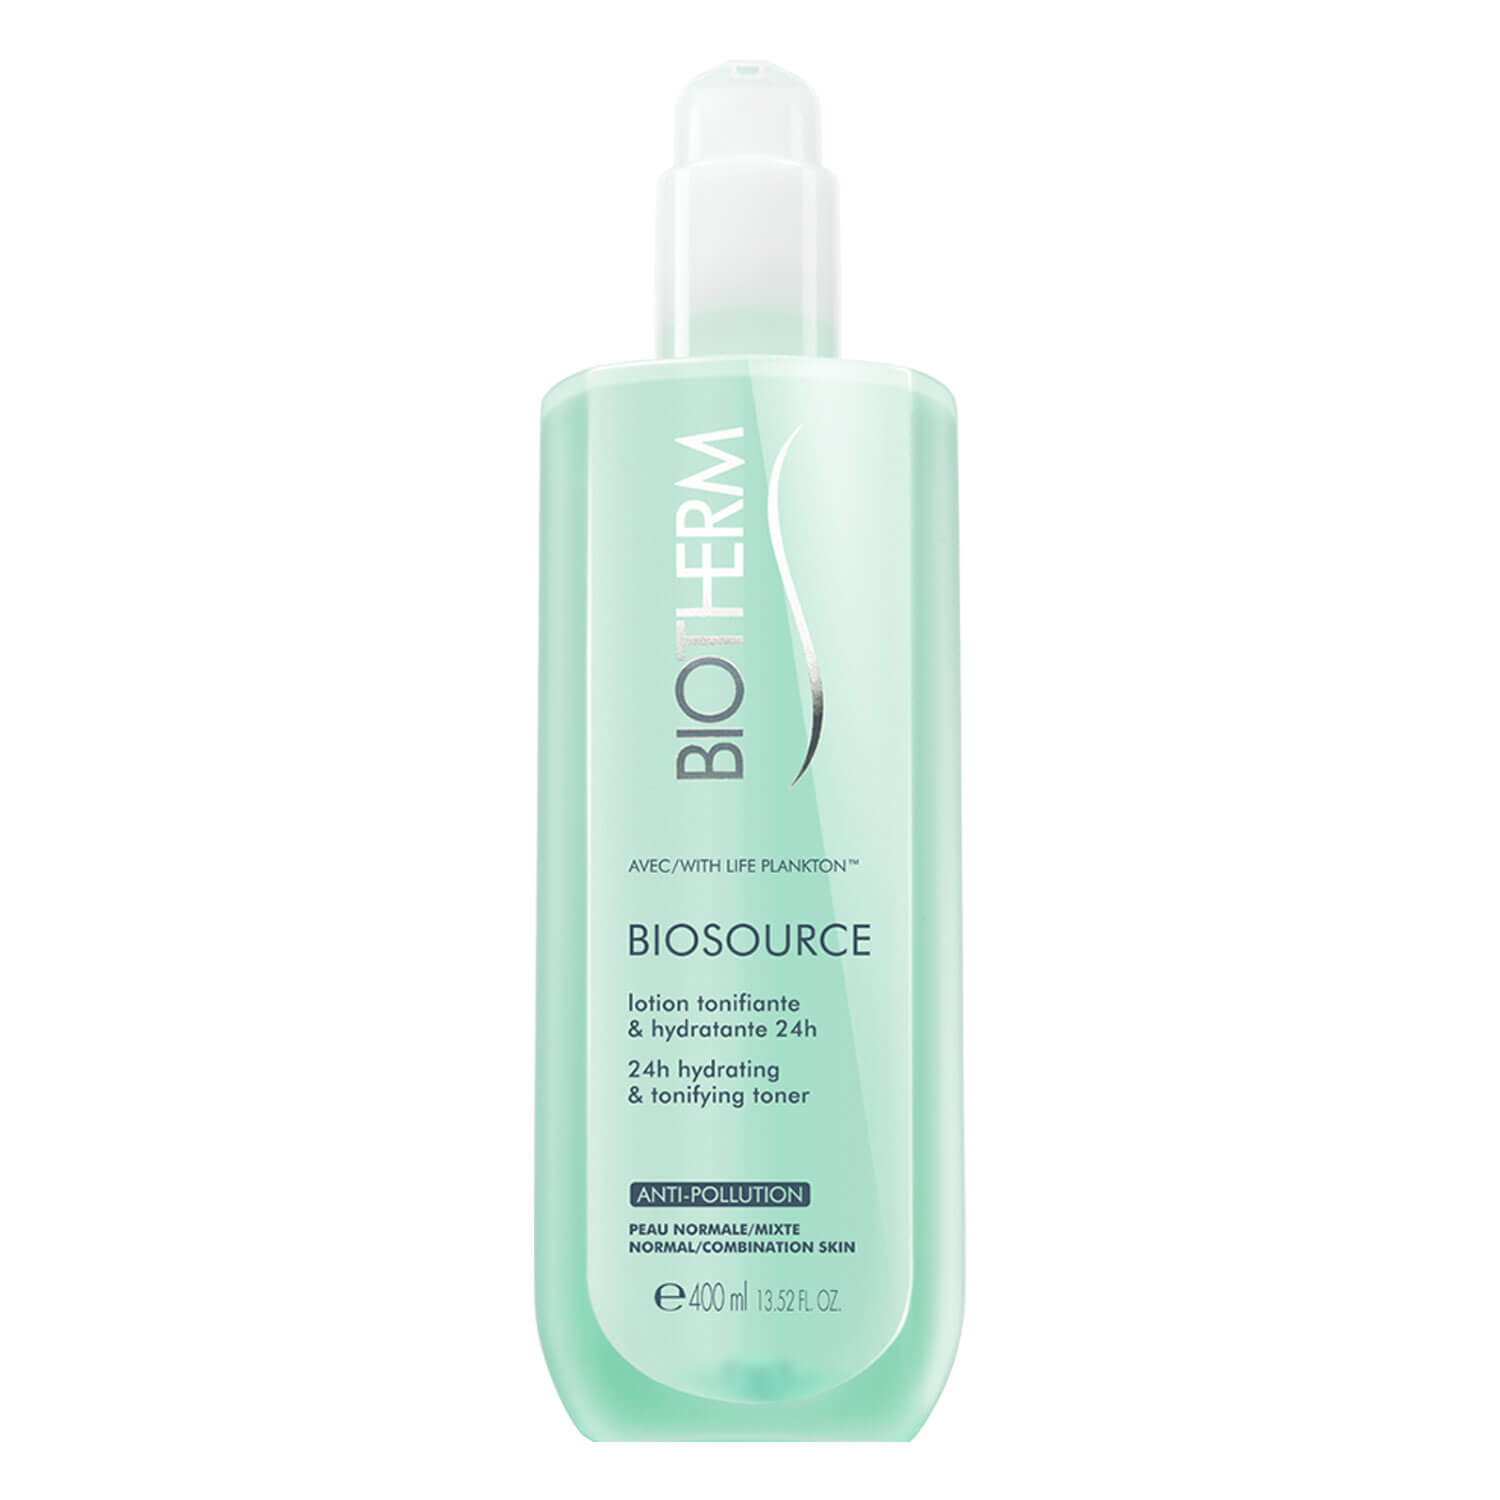 Biosource - Toner Normal/Combination Skin Limited Edition